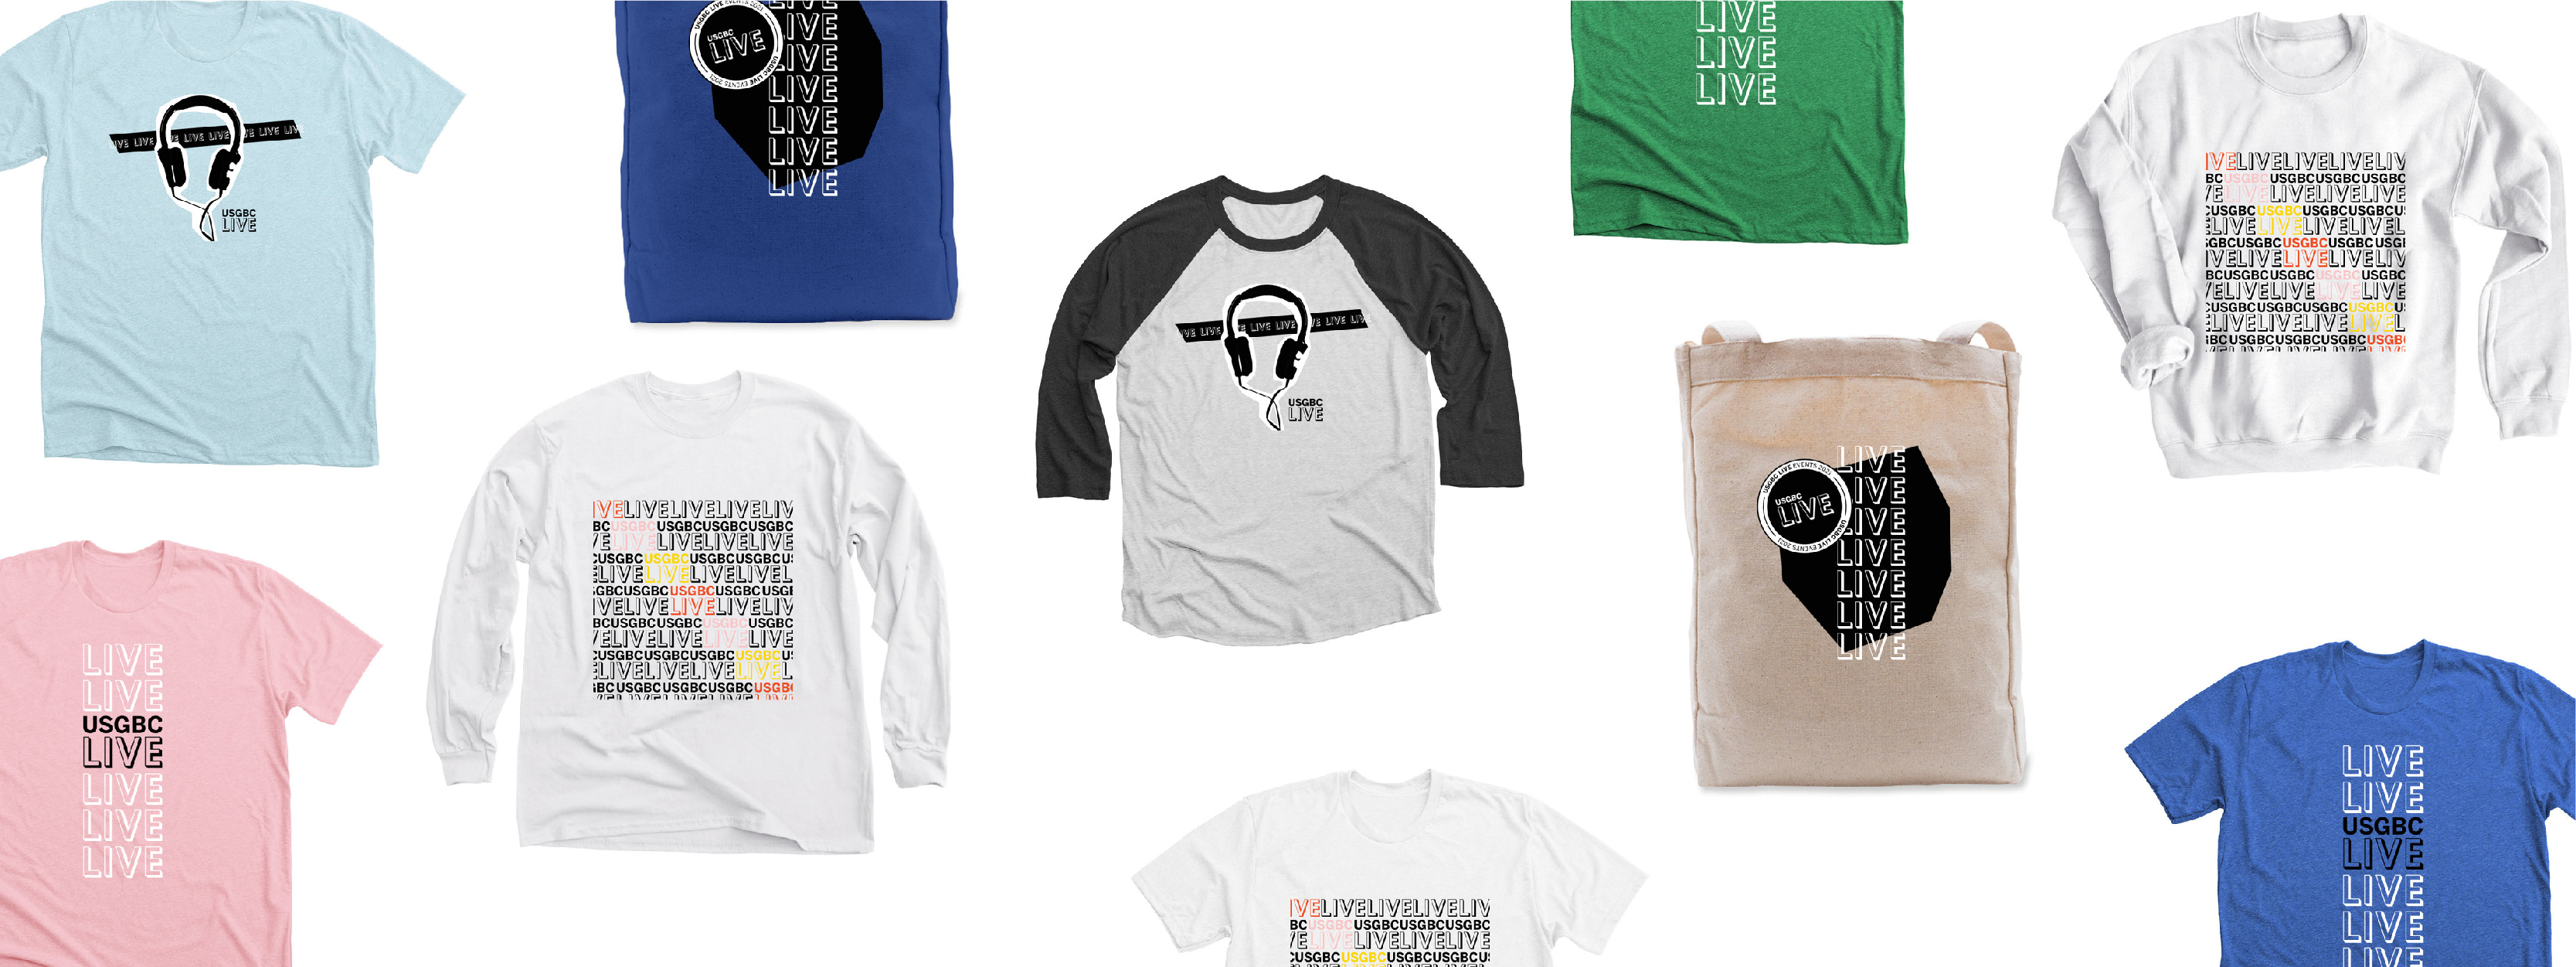 A collage of t-shirts with USGBC Live branding